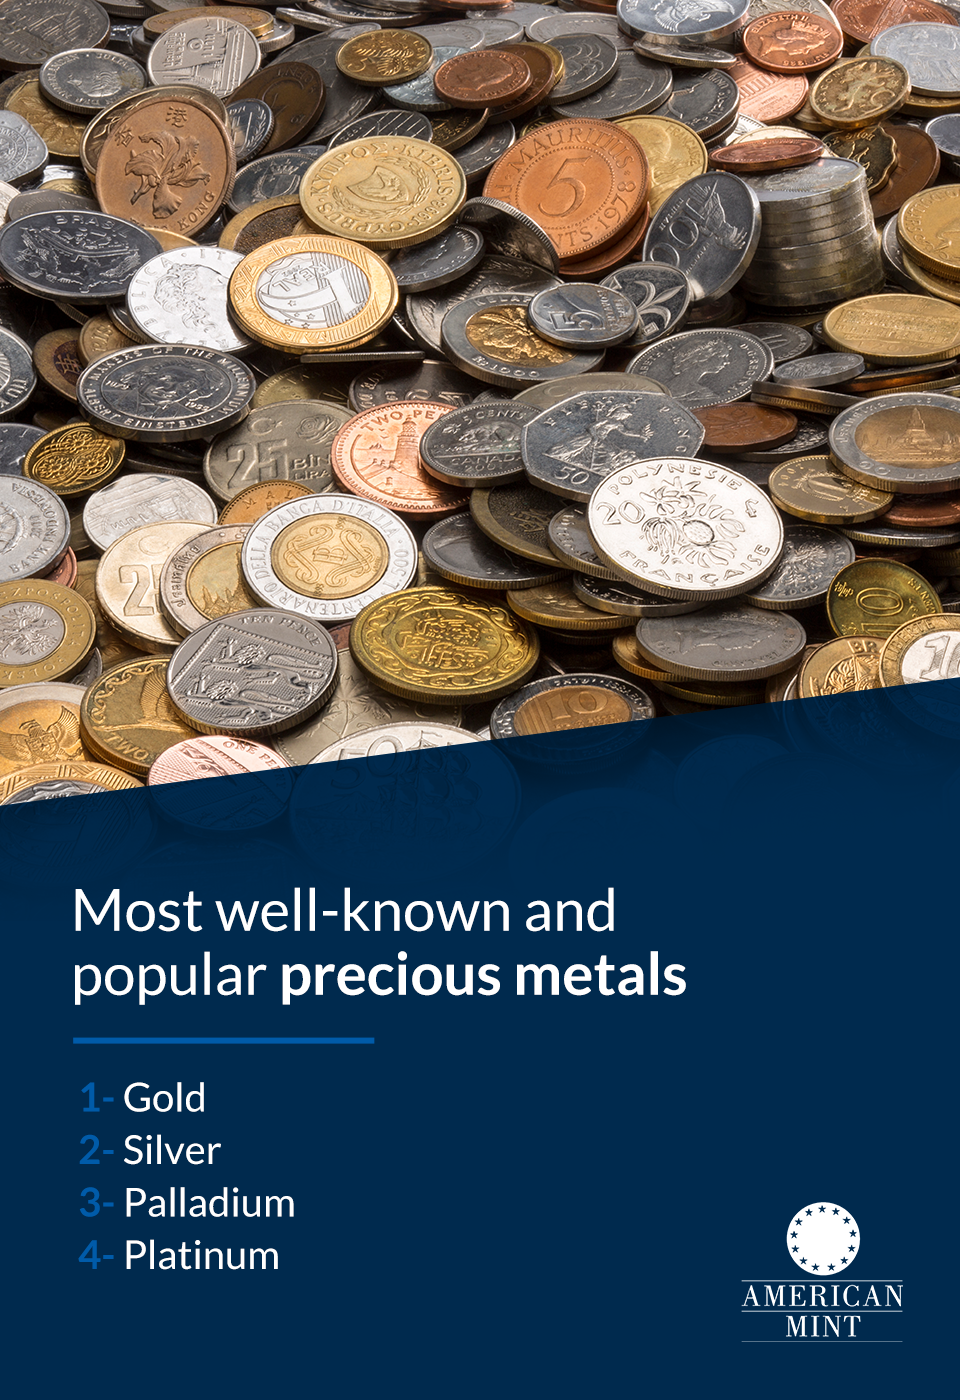 02-most-well-known-and-popular-precious-metalsO0m556pAjxruZ